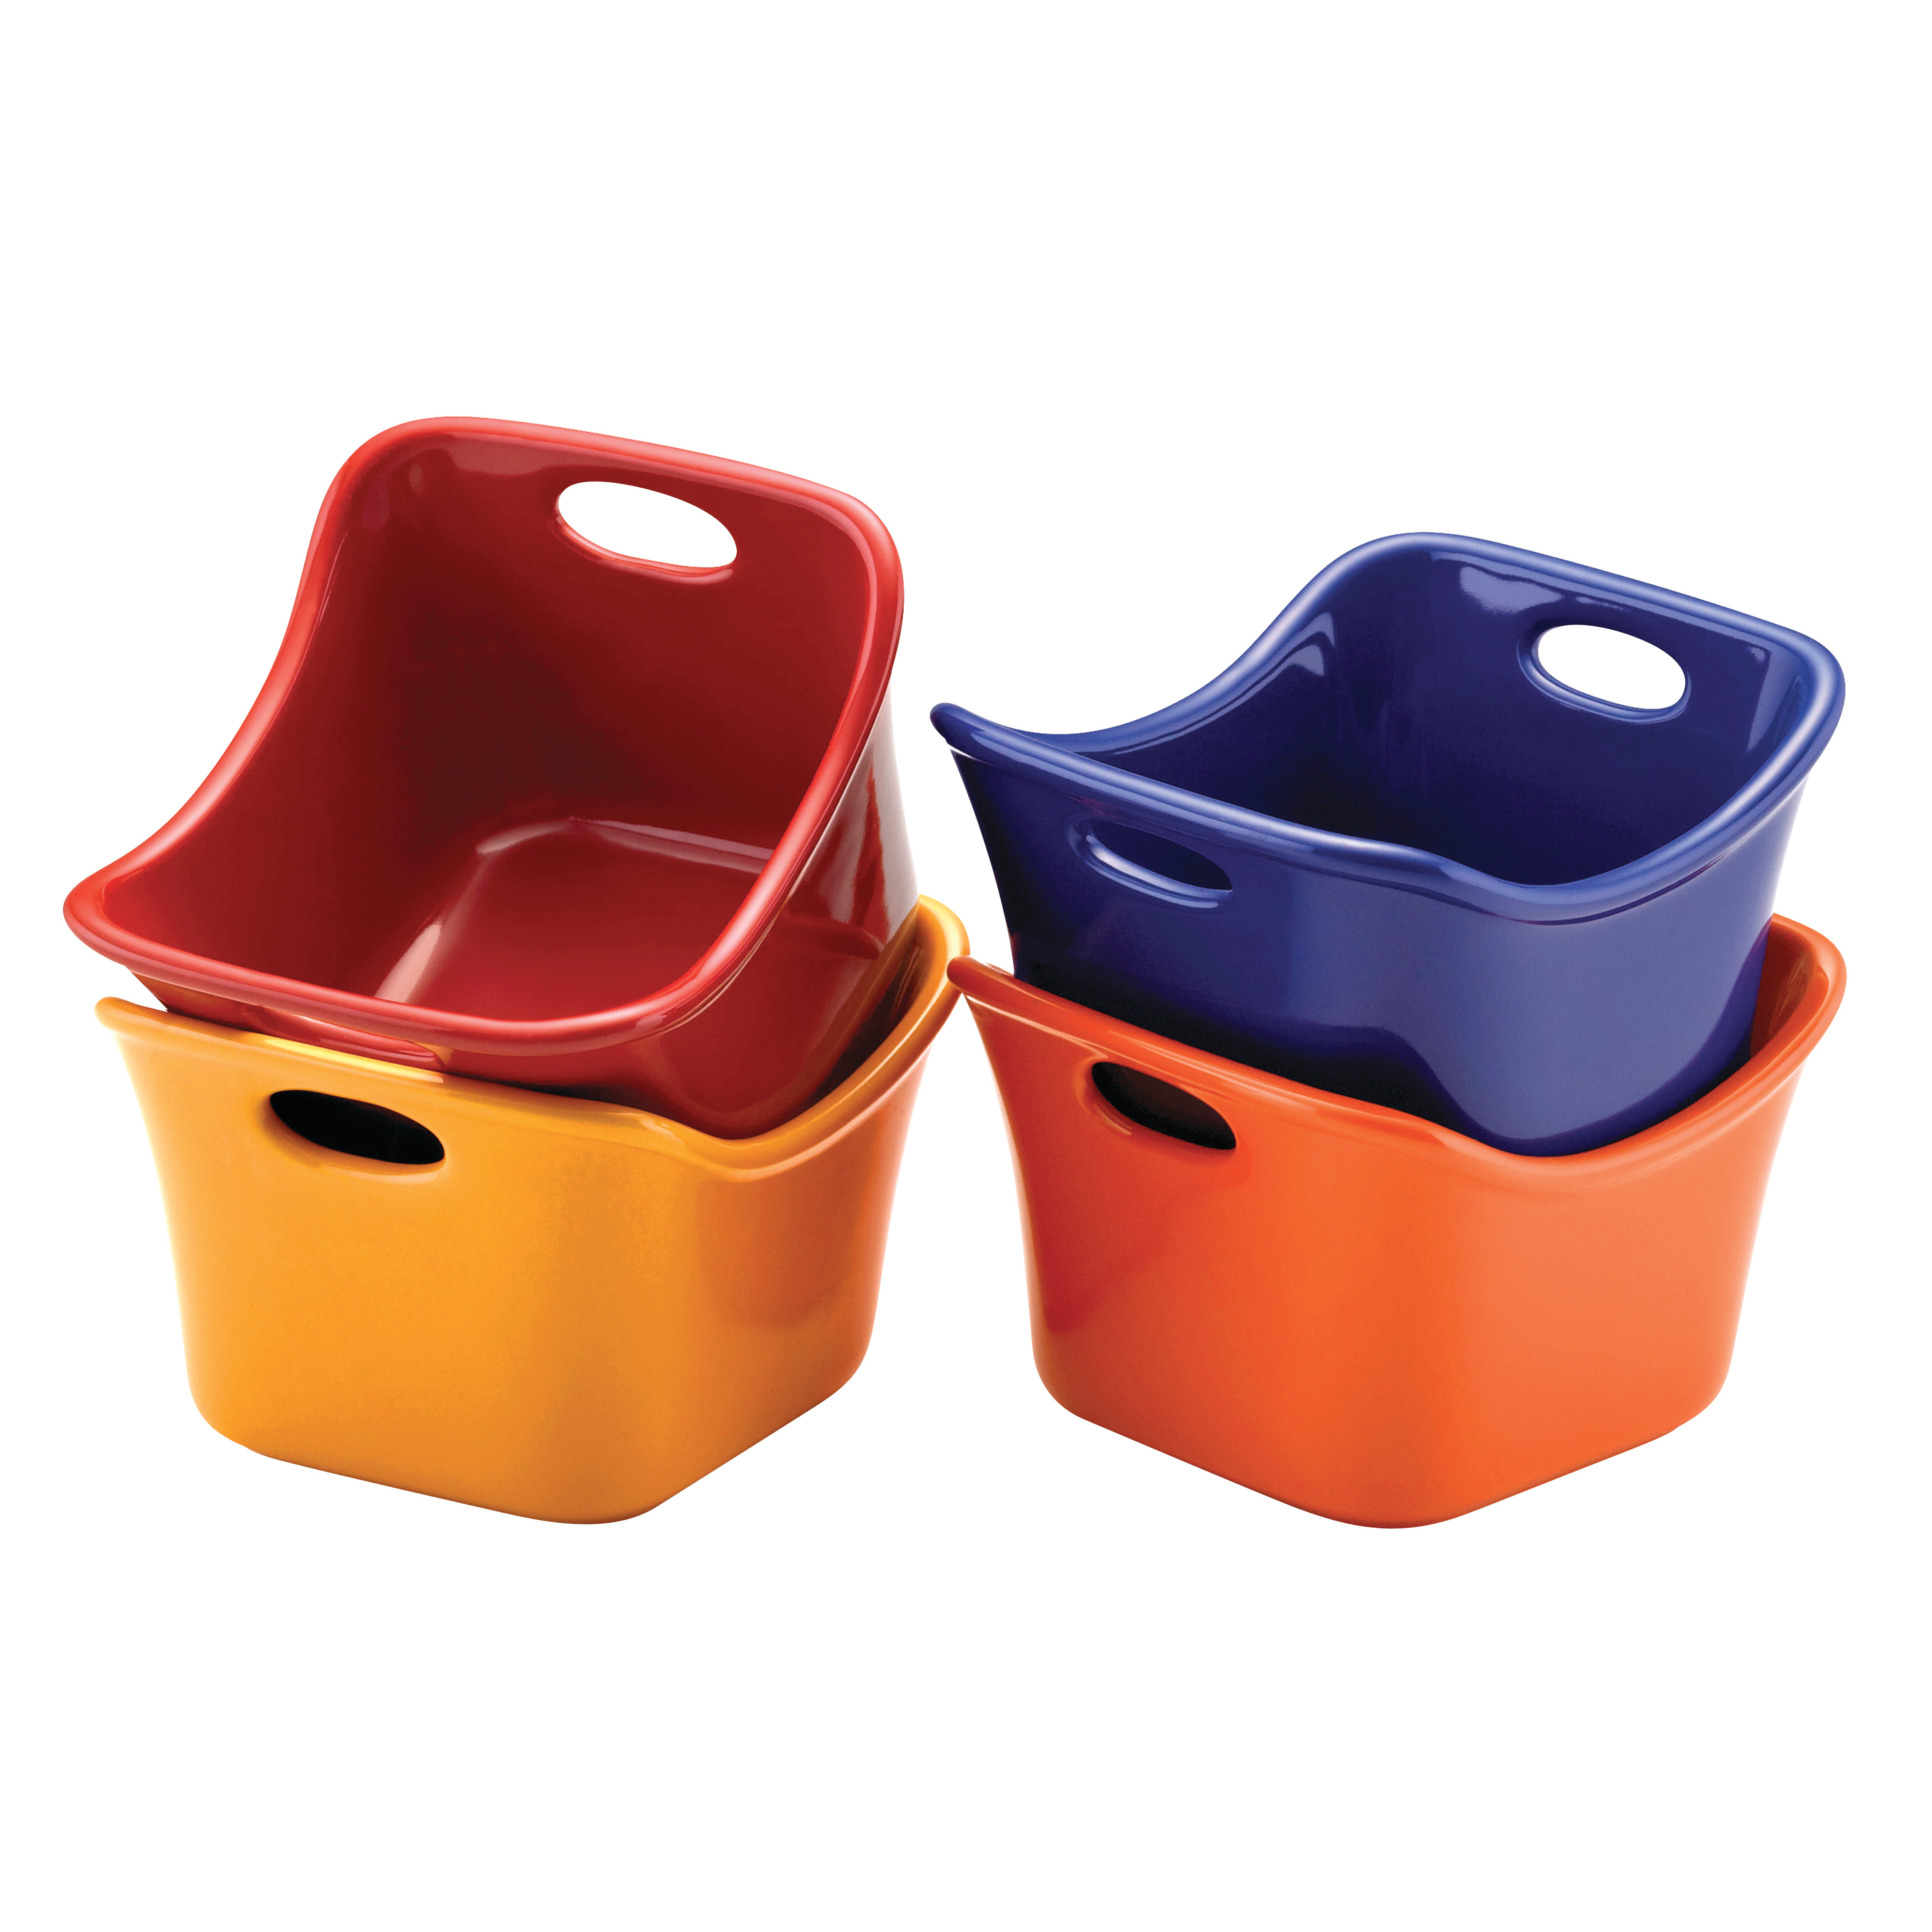 Rachael Ray Stoneware 4-Piece Square Ramekin Set, Assorted